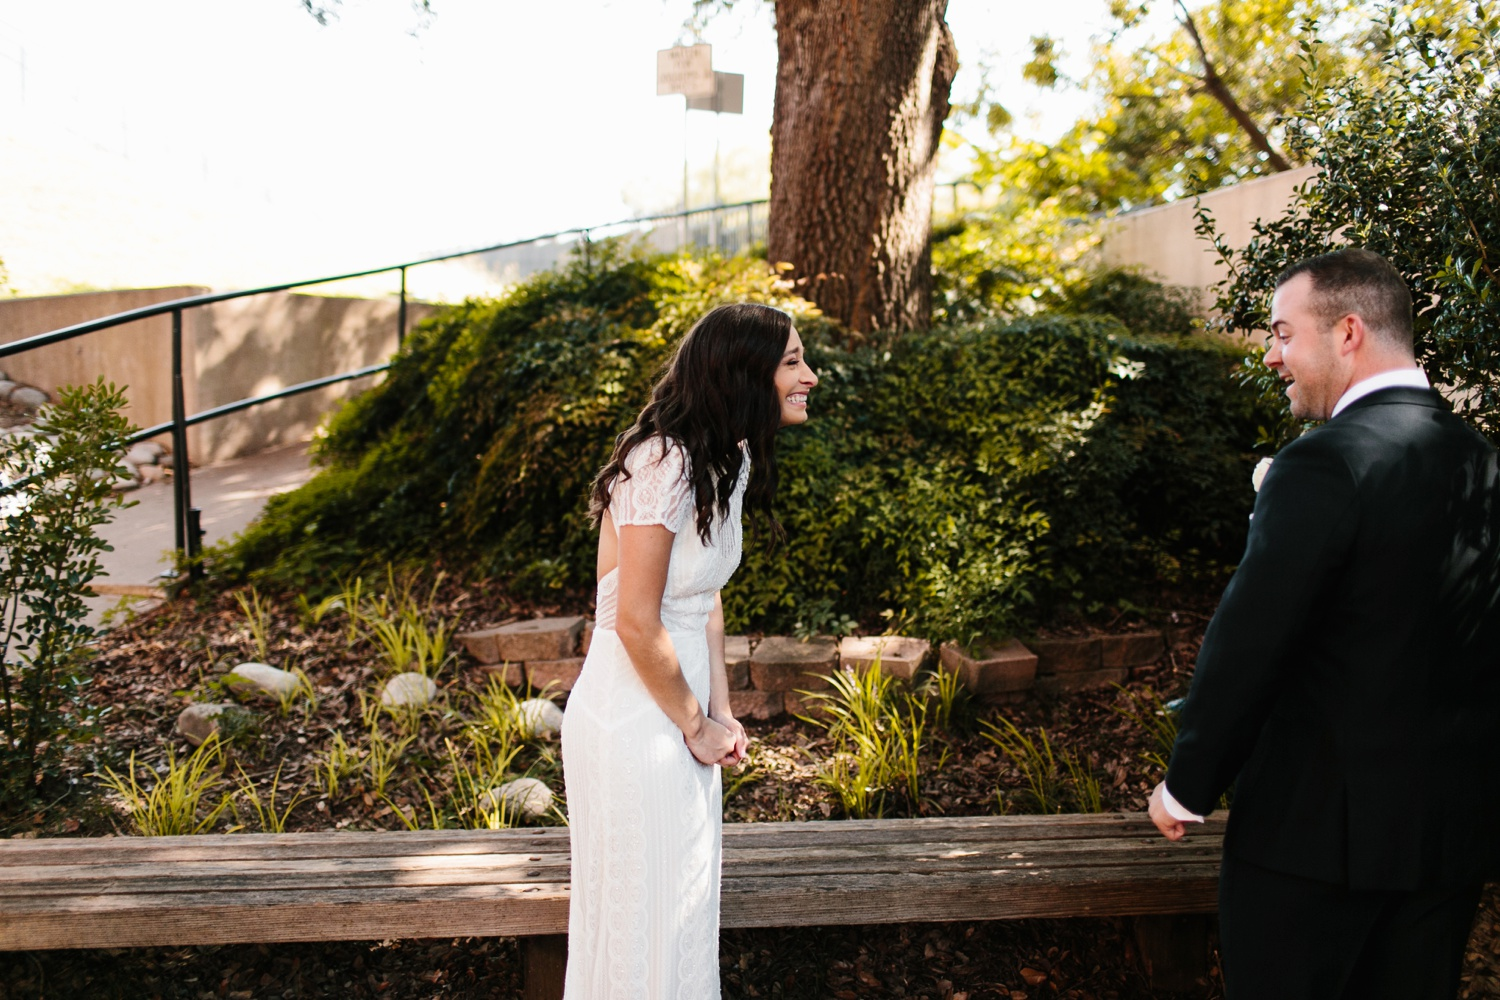 Kadee + Tyler | a raw, emotional wedding at the Filter Building on White Rock Lake in Dallas, TX by North Texas Wedding Photographer, Rachel Meagan Photography 057